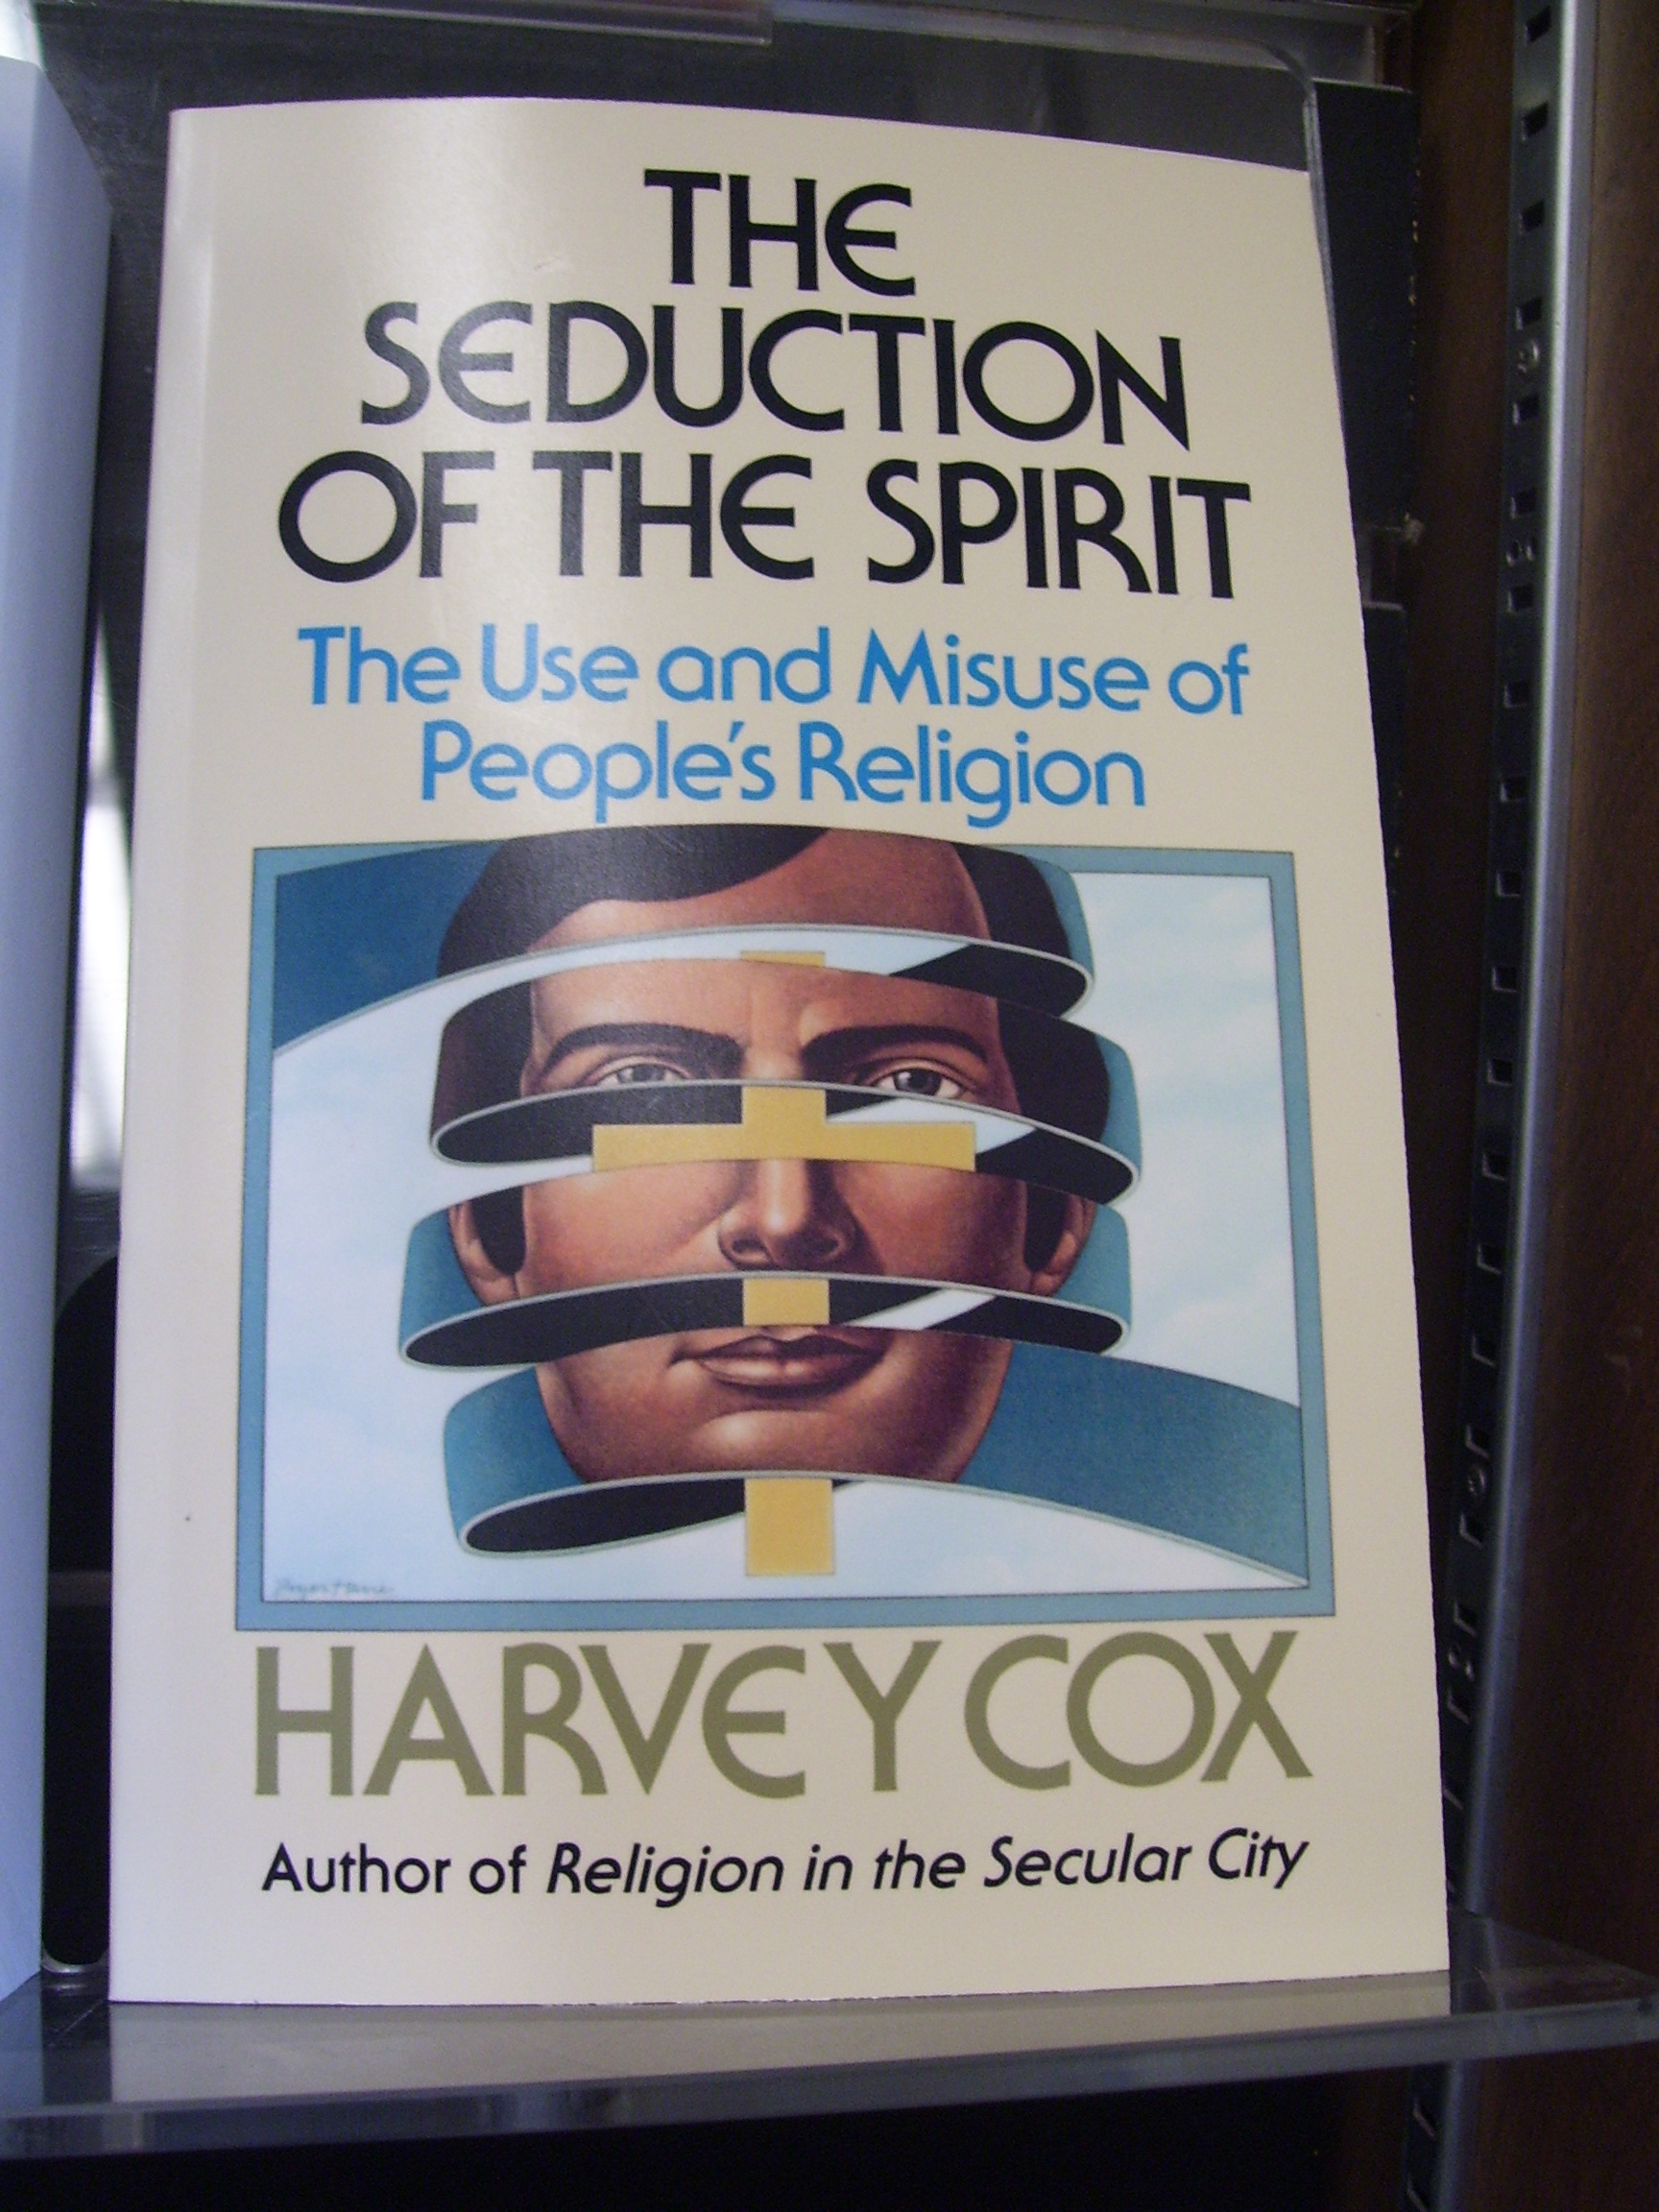 paige_m_gutenborg_the_seduction_of_the_spirit_harvey_cox